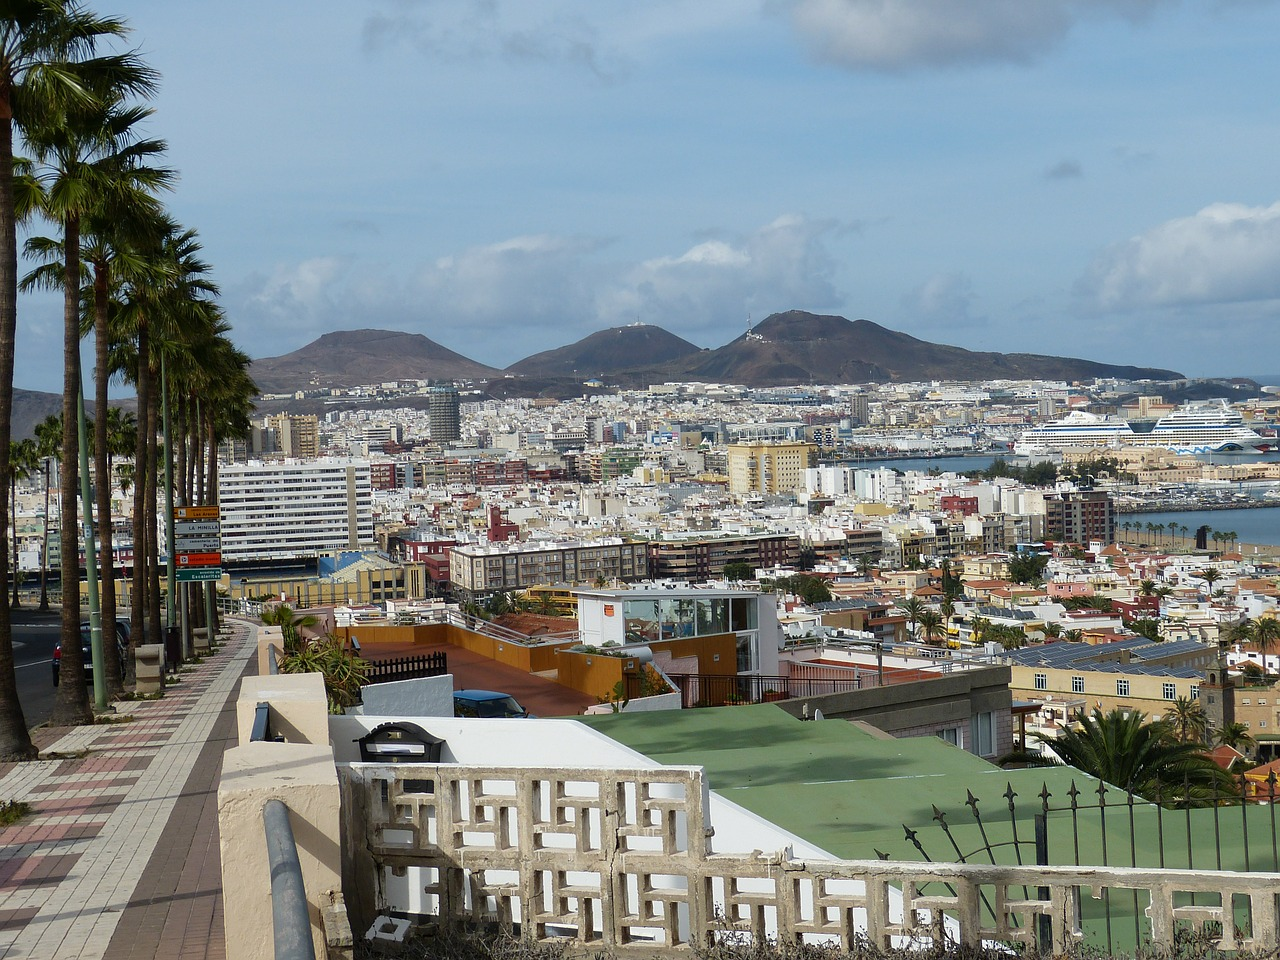 Seasons in the Canary Islands: Weather and Climate